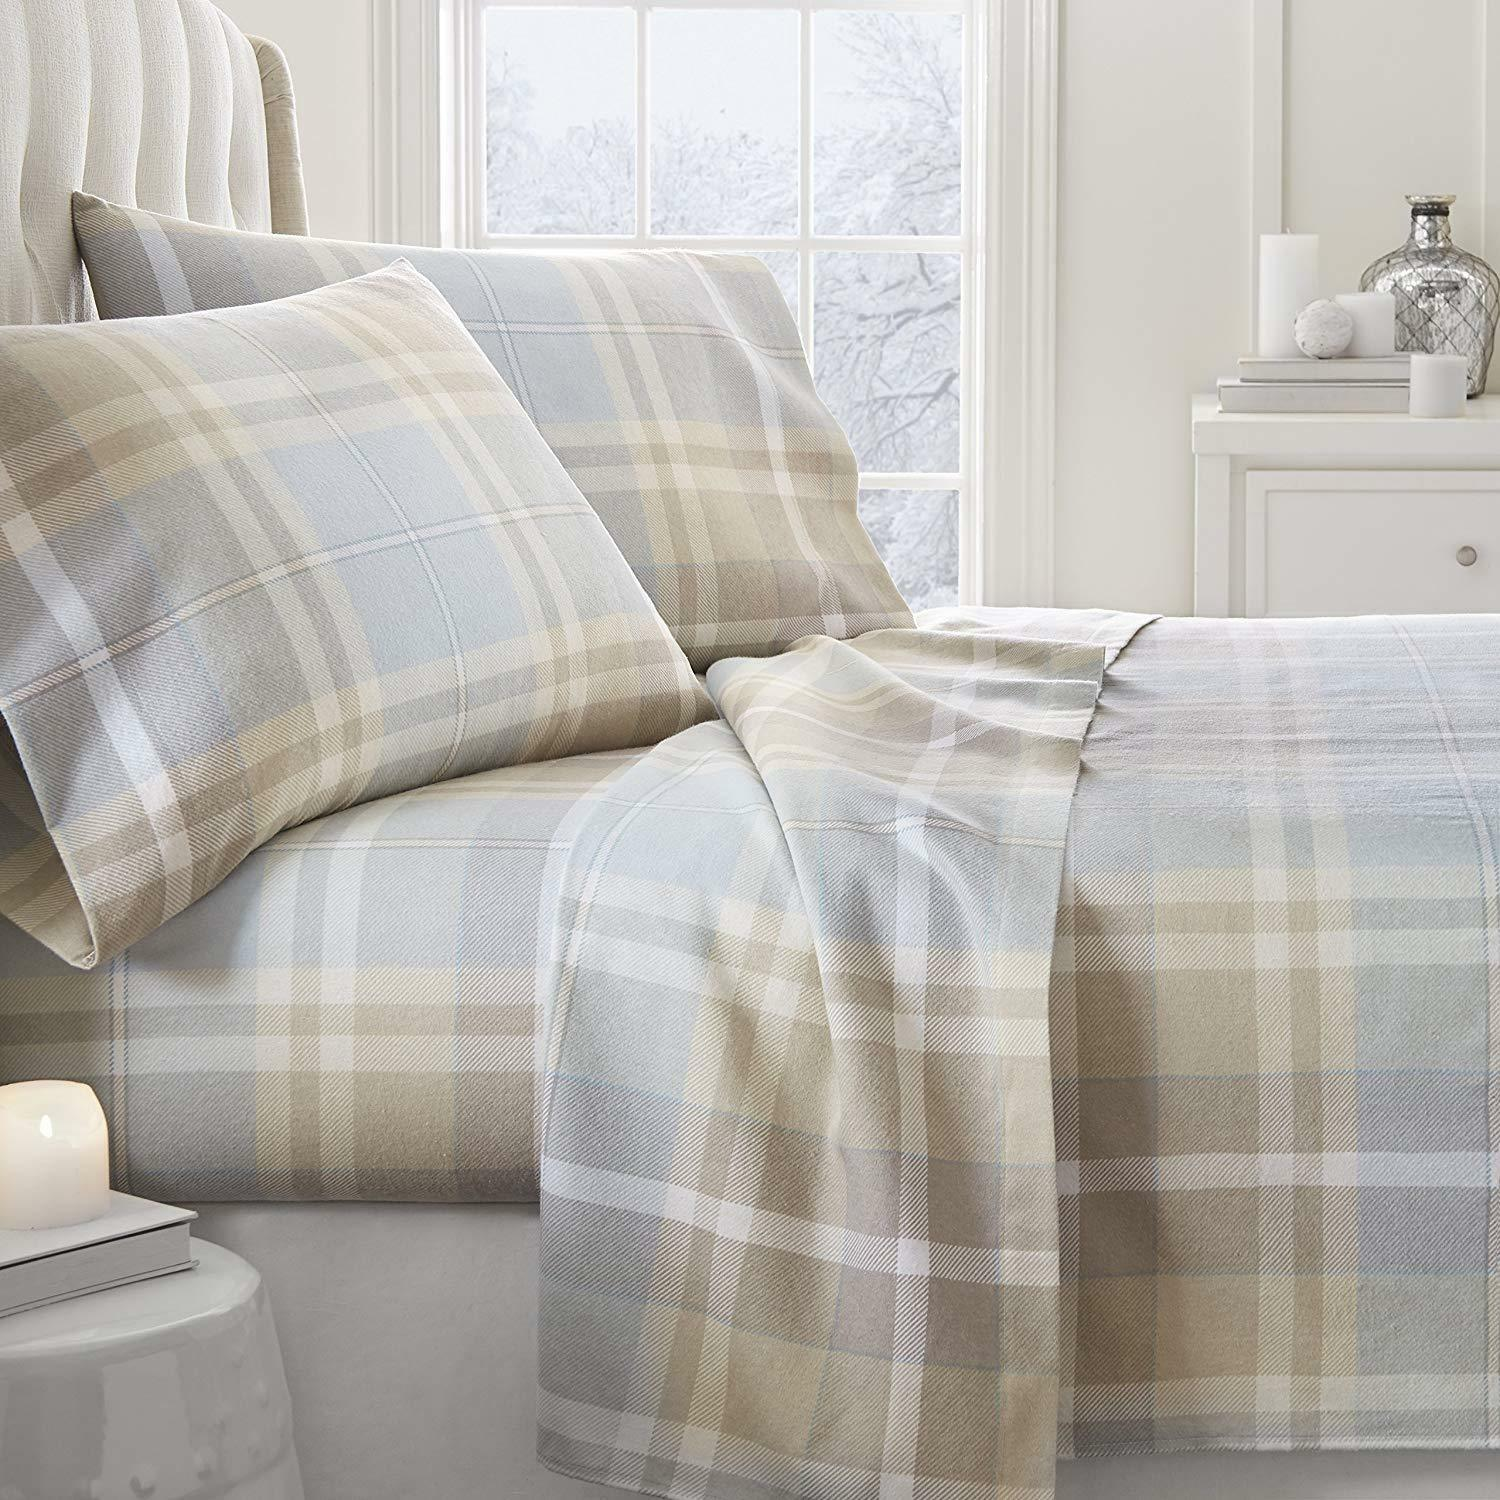 FLANNEL PLAID PREMIUM SUPER SOFT BED SHEETS SHEET SET 4 PIECE QUEEN OR KING Größe